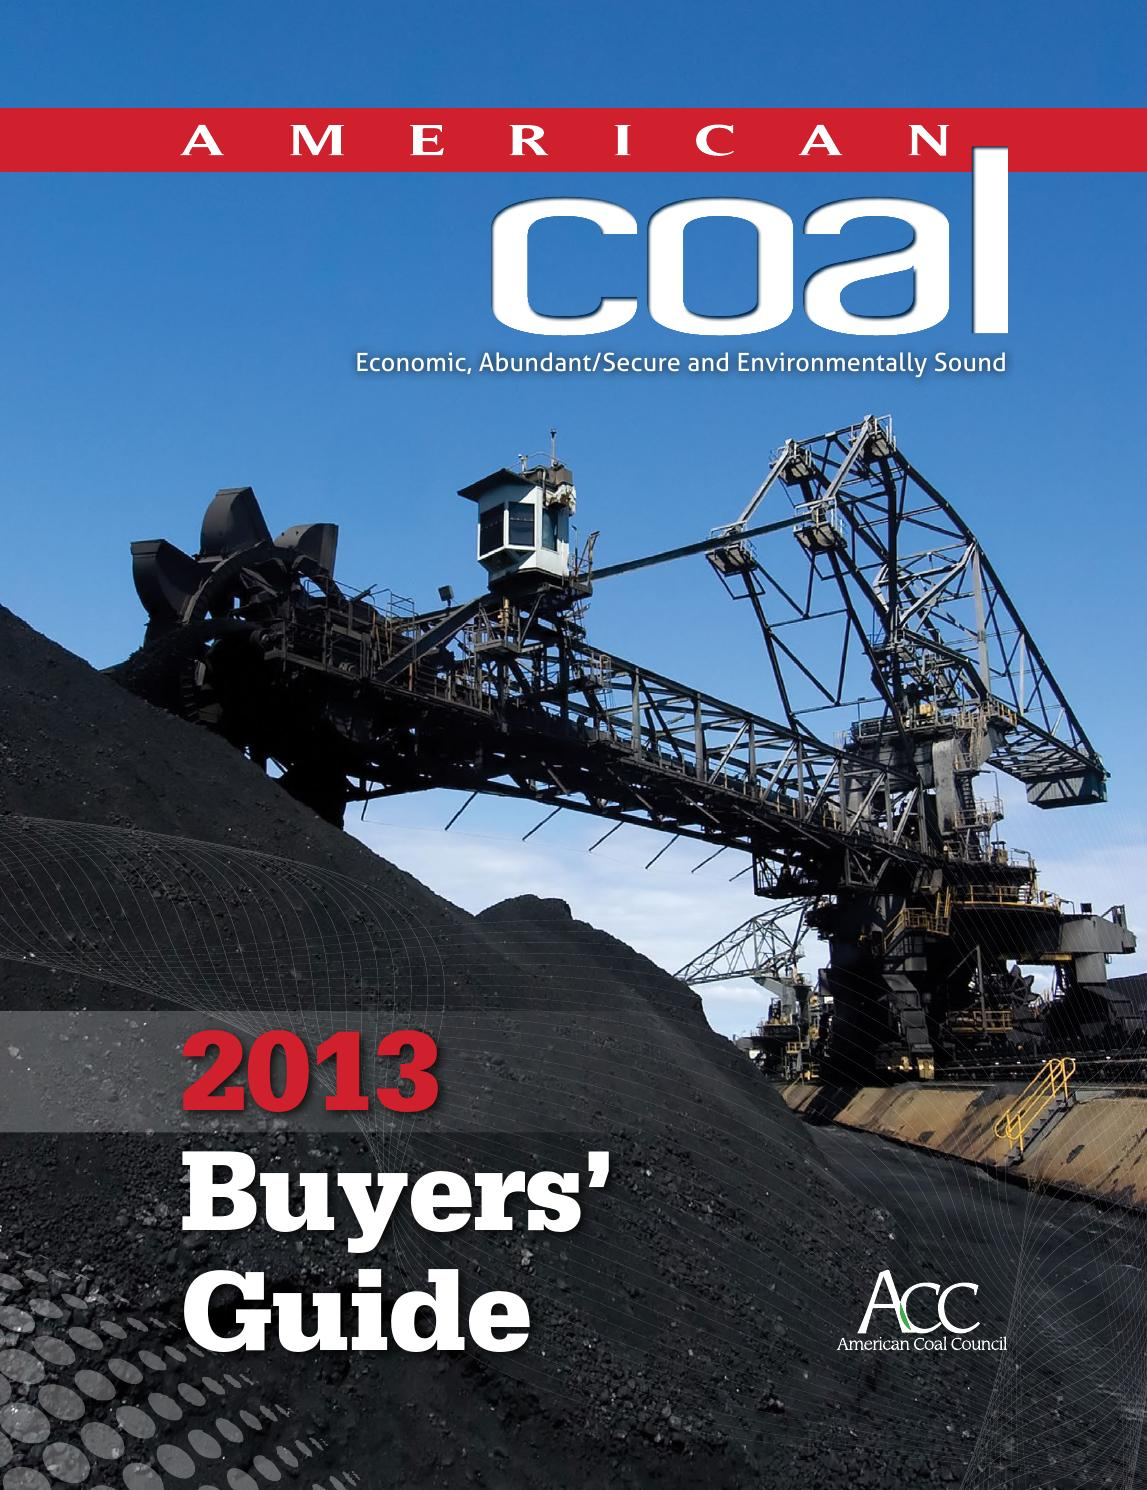 American coal 2013 buyers 39 guide by american coal council for 140 broadway 46th floor